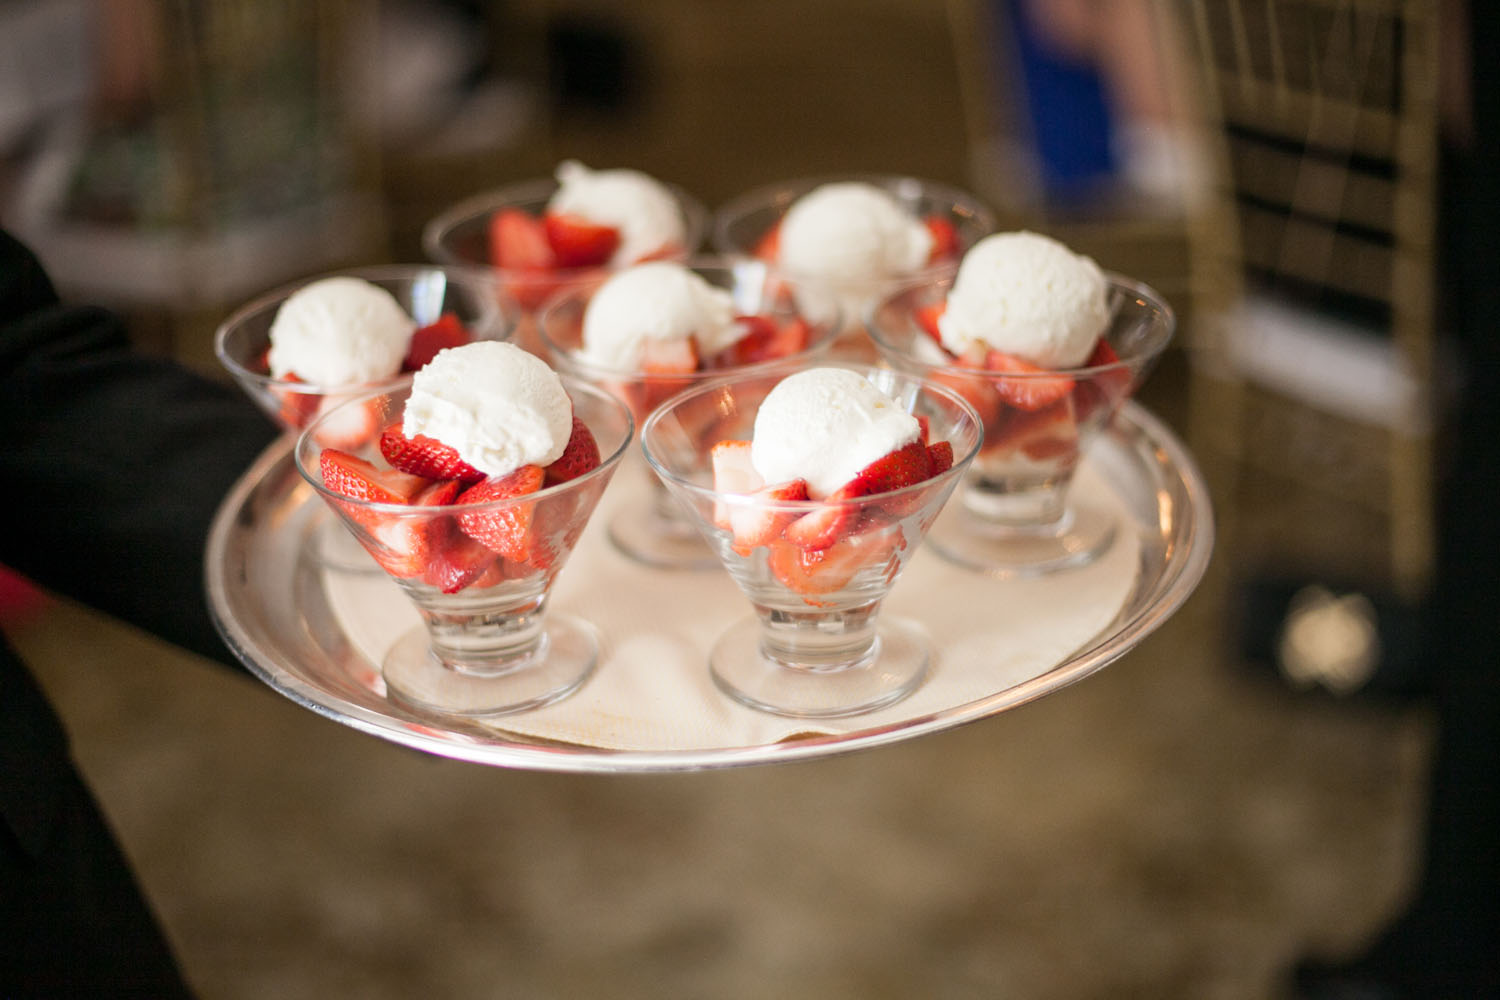 Strawberries and cream at bridal shower